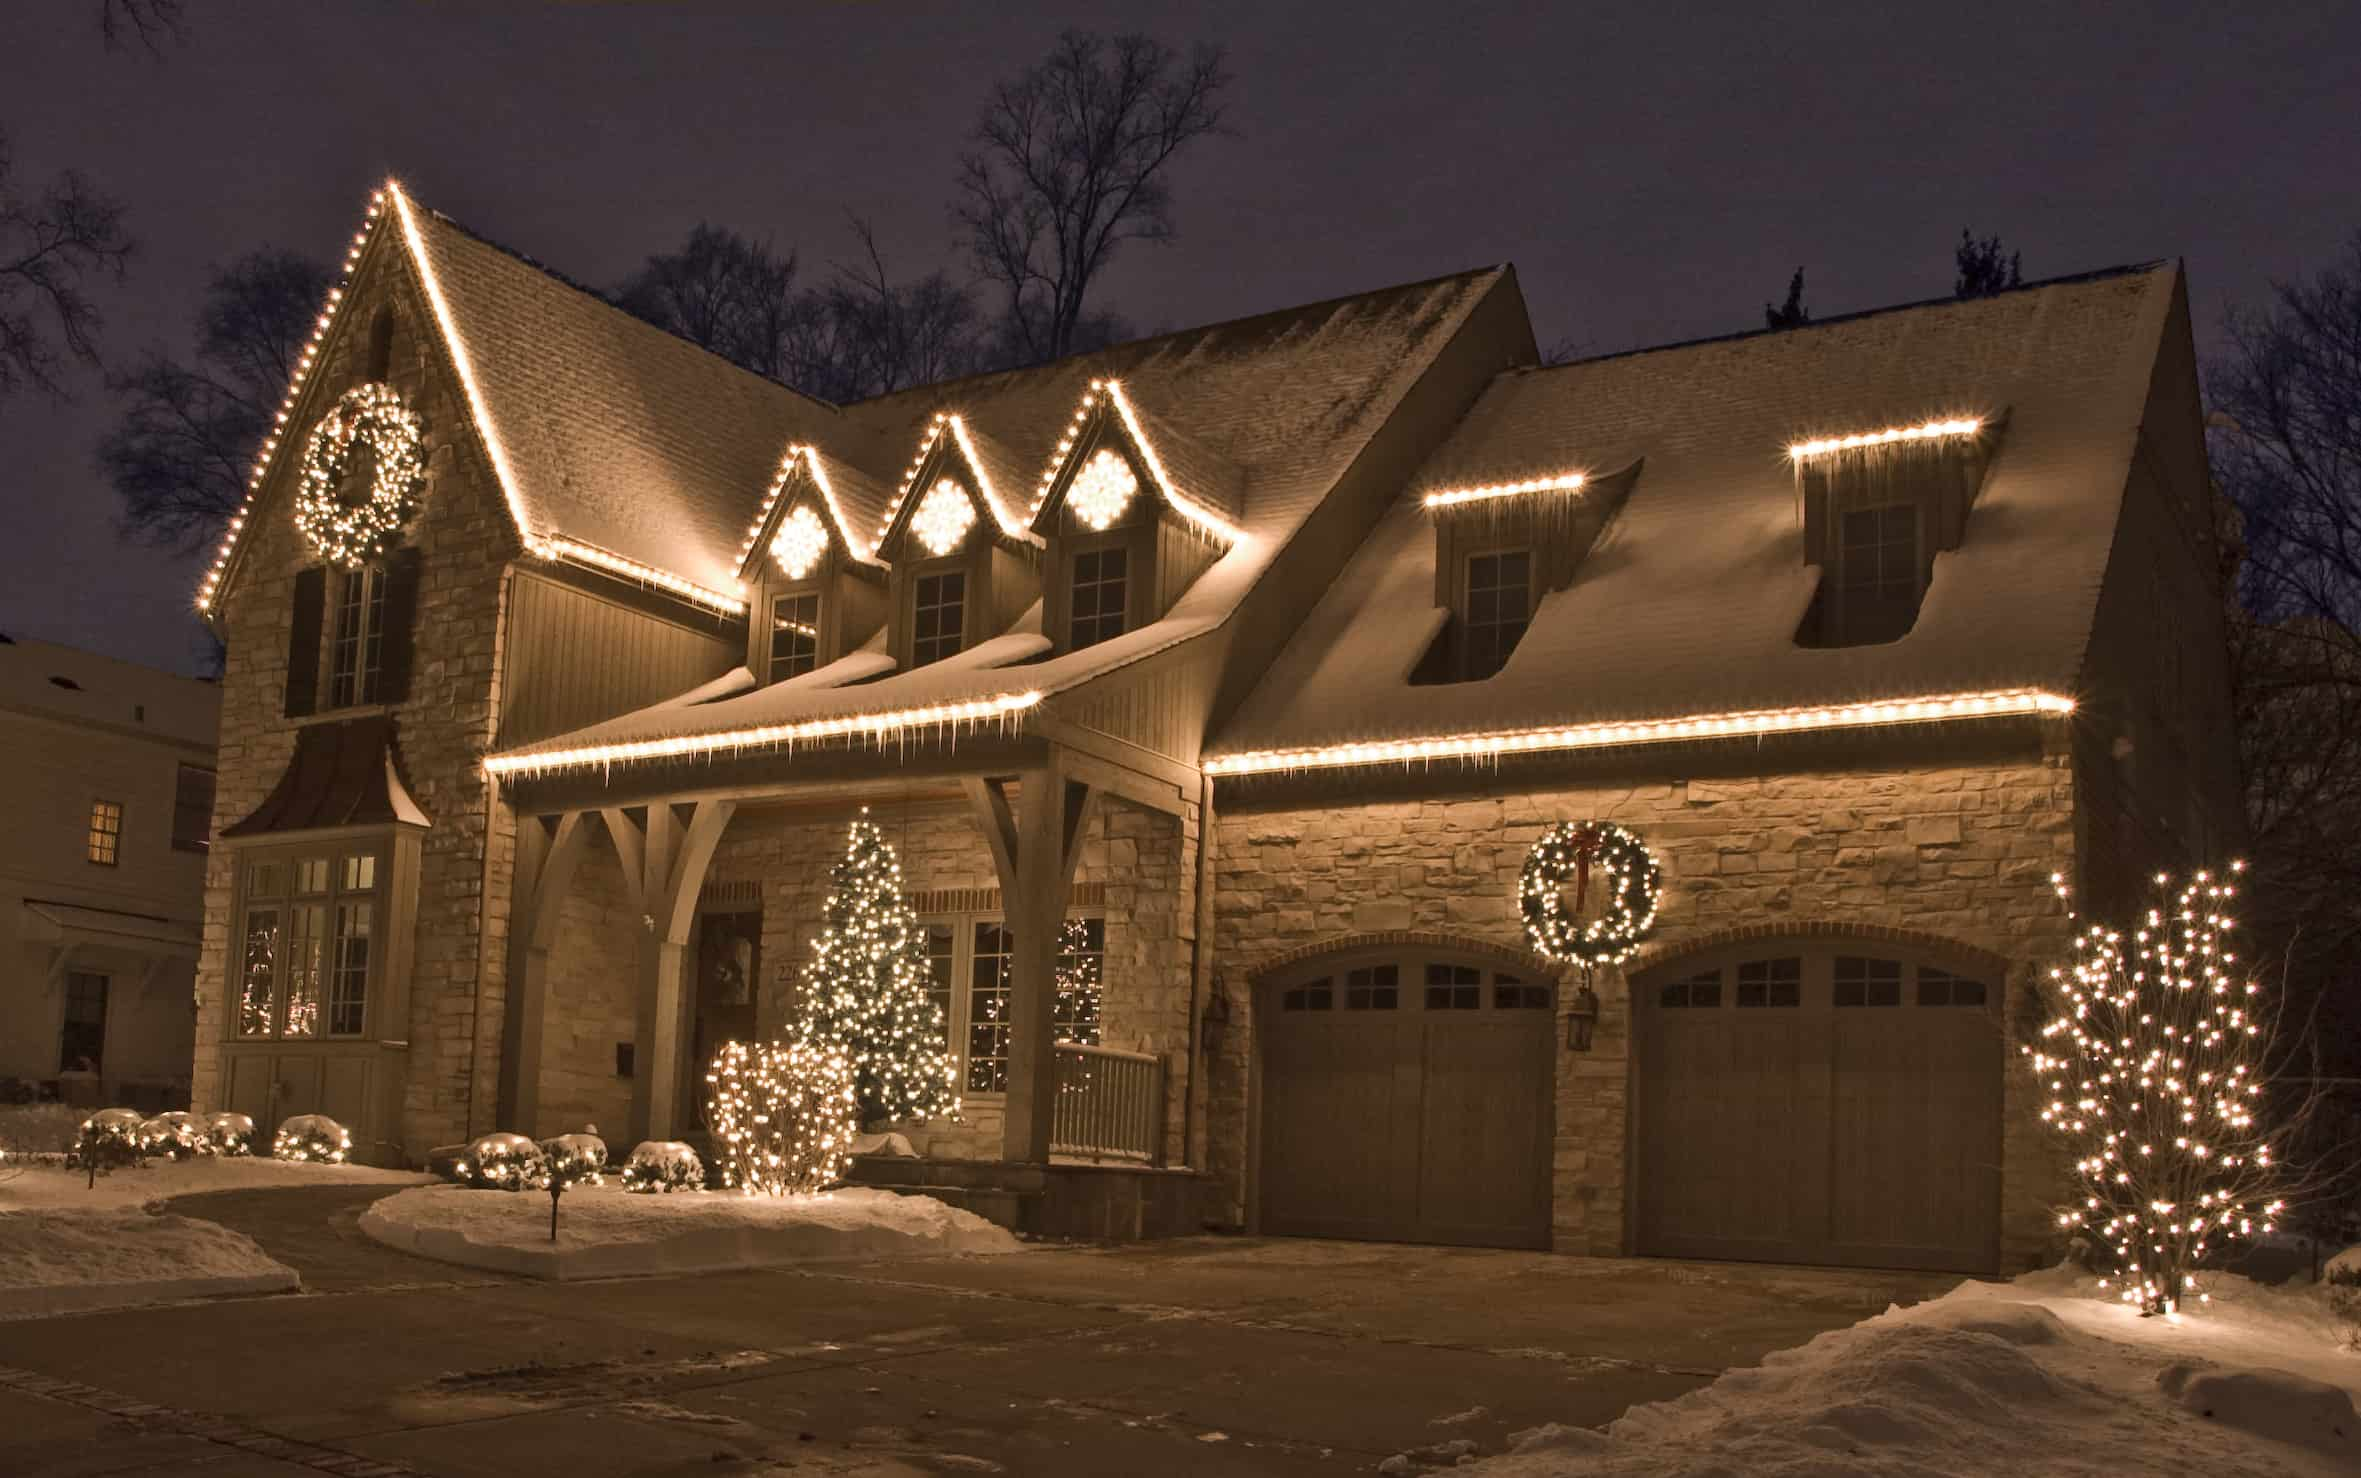 Dugan Front Right Outdoor Lighting In Chicago IL